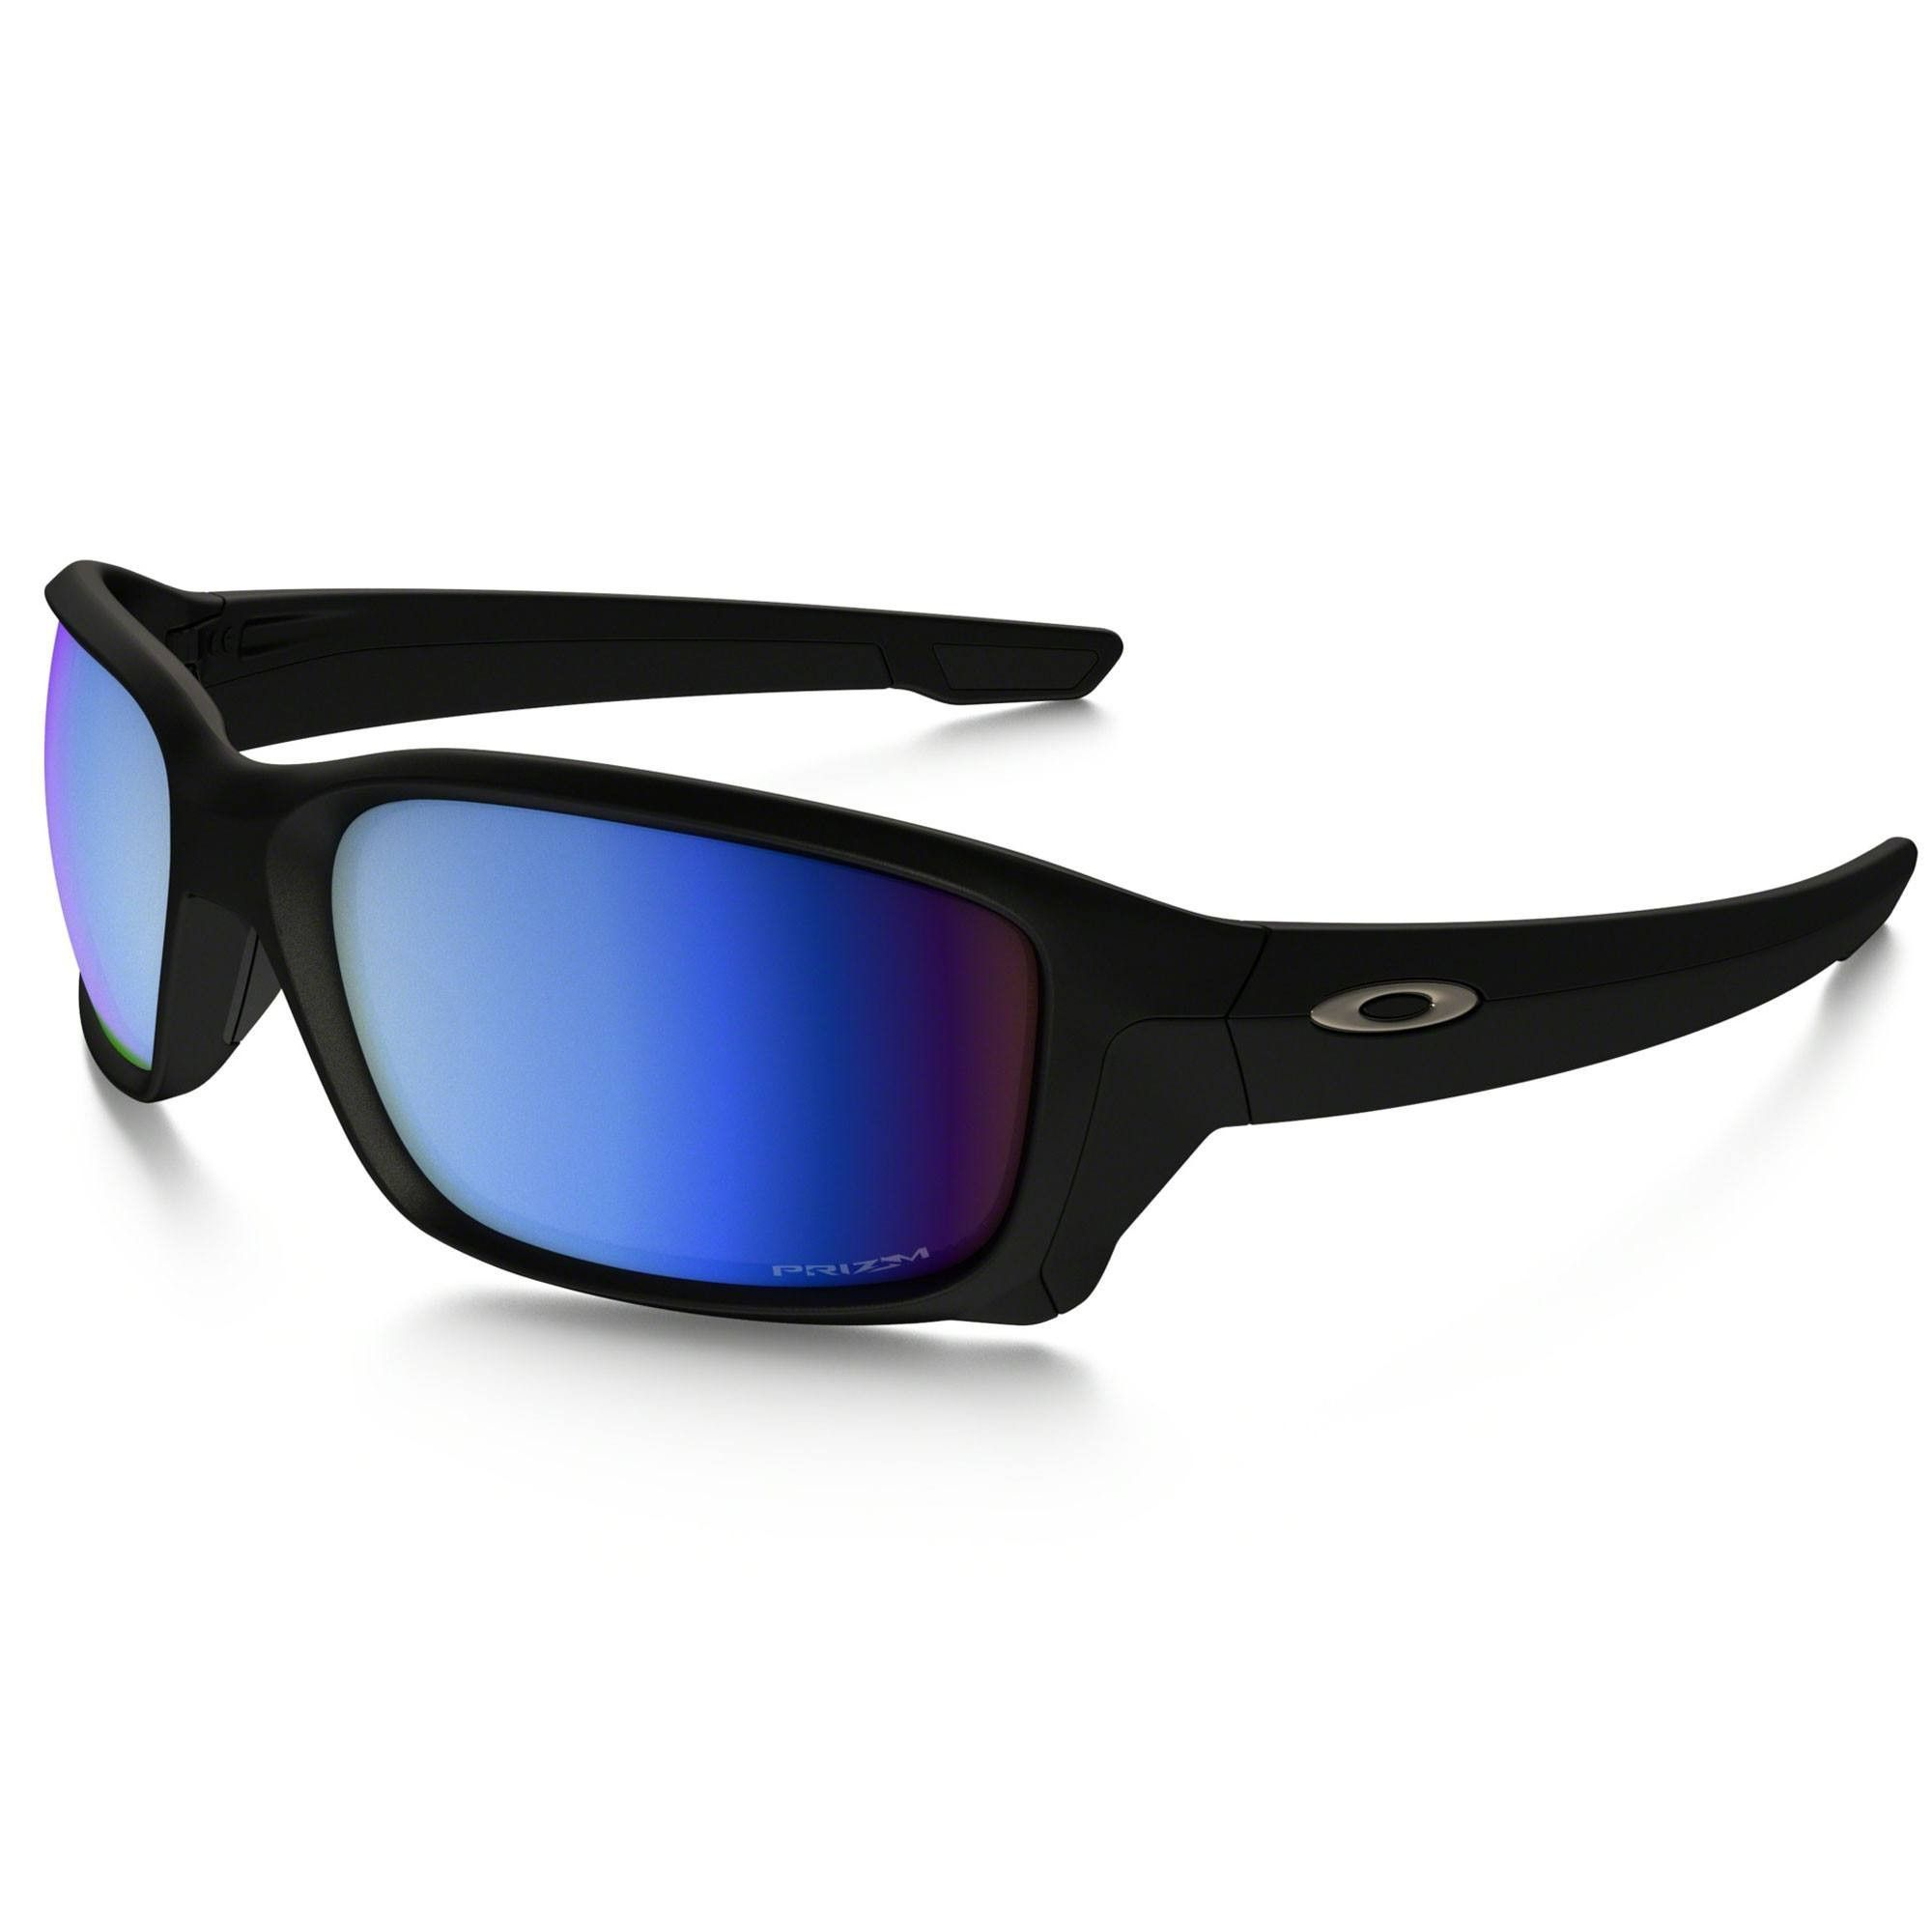 a4bf72d4ef3 Oakley Straightlink Prizm Deep Water Polarized Sunglasses ...